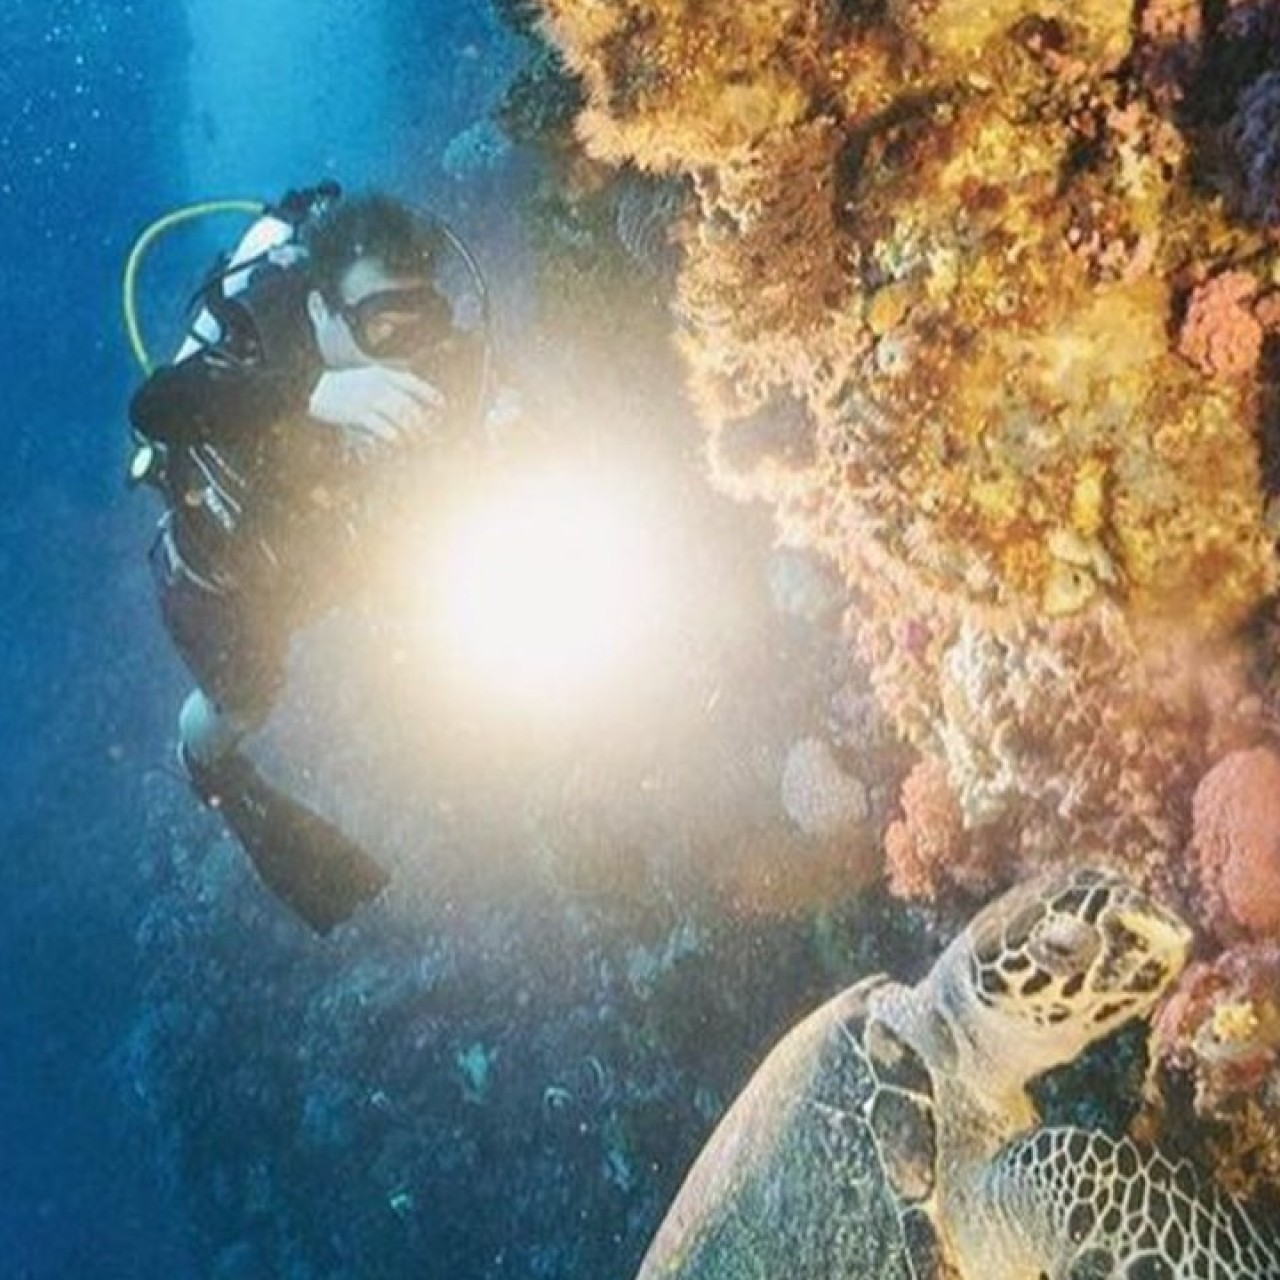 7 top diving sites in Asia that offer underwater thrills of a